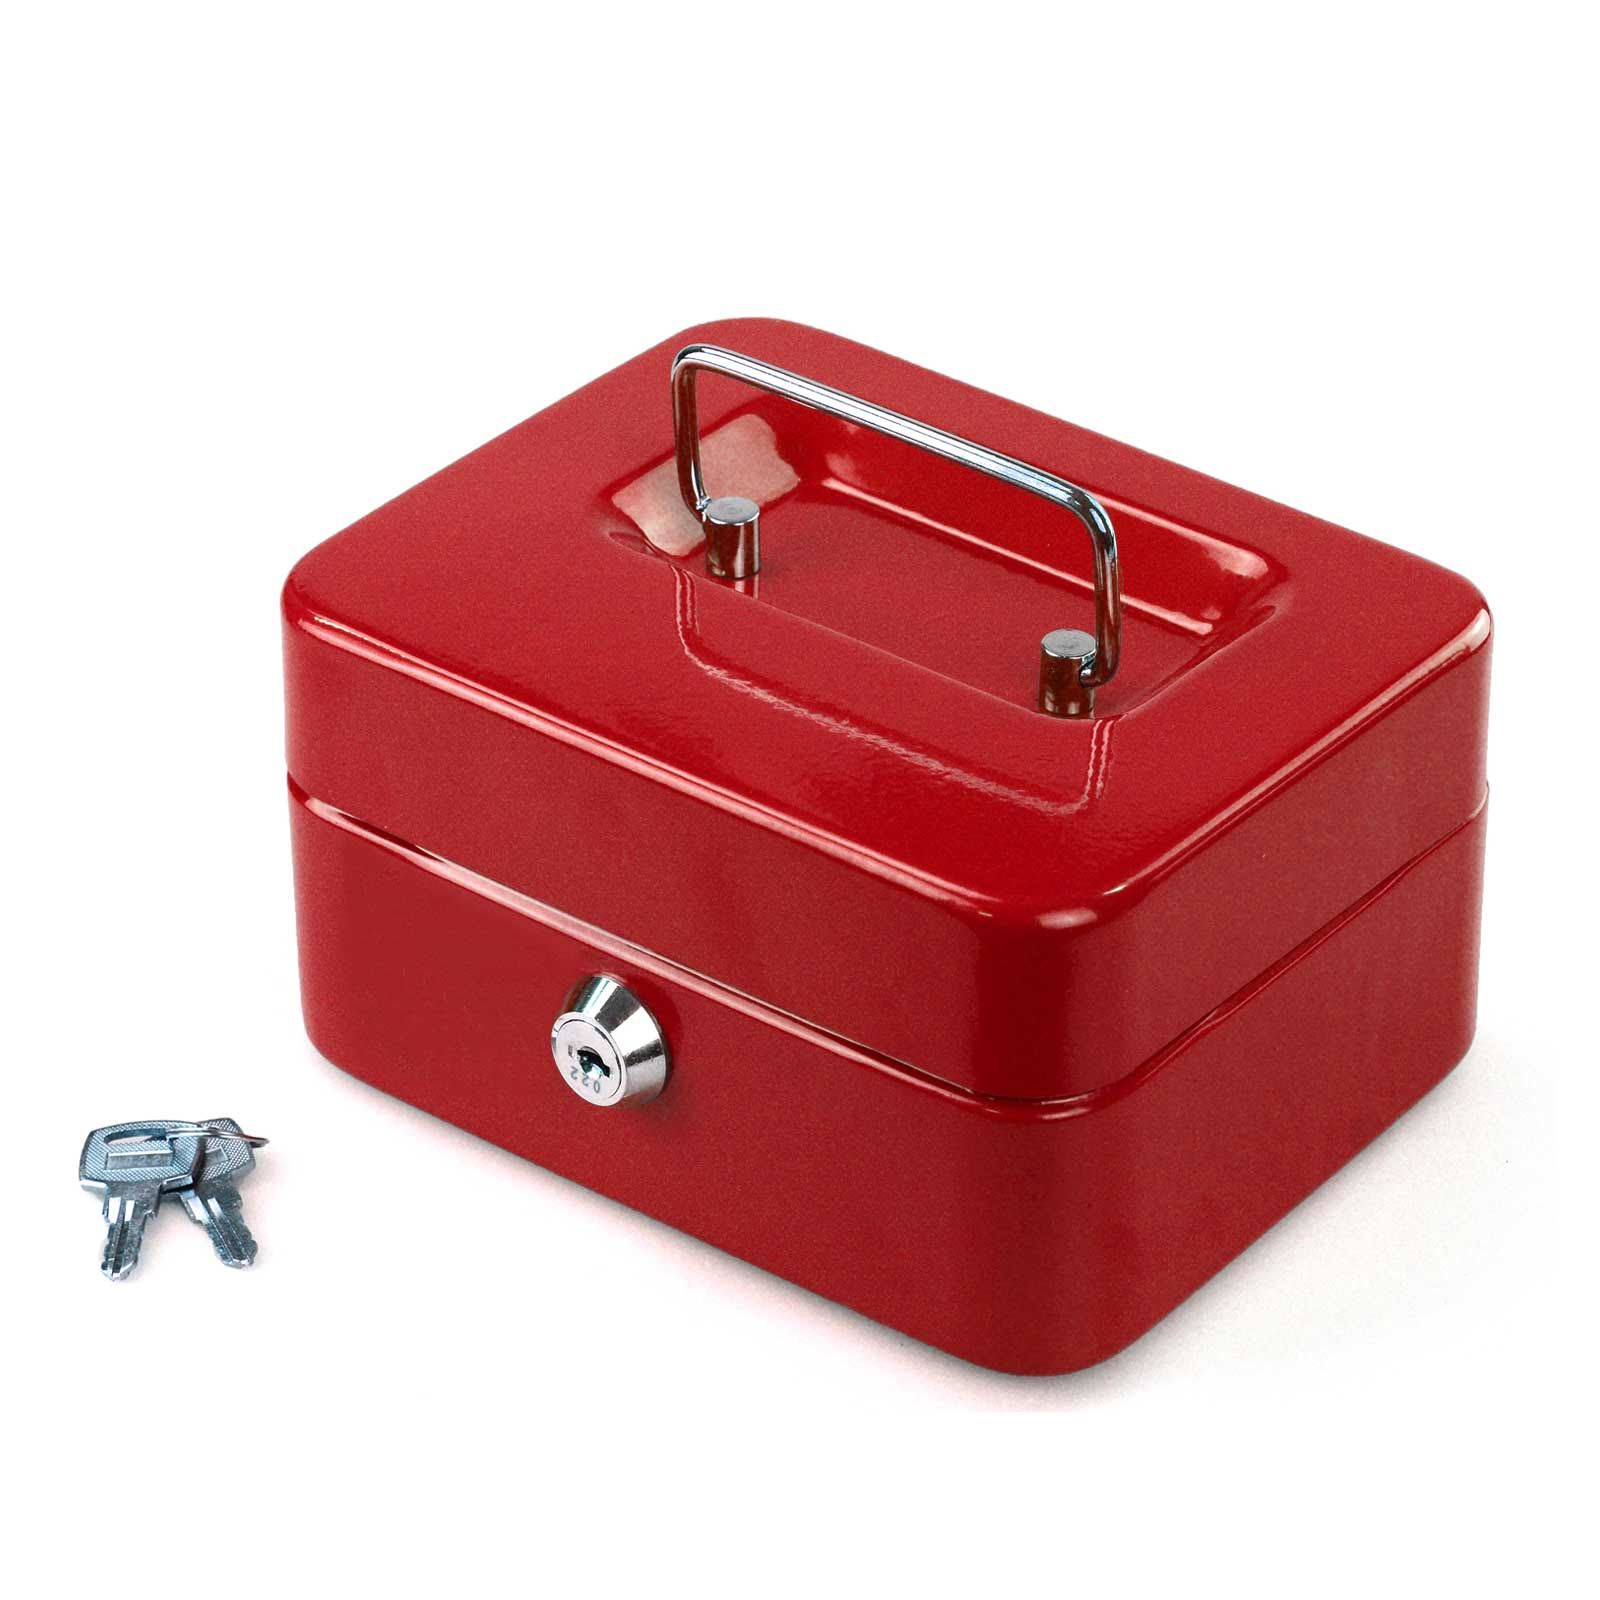 Petty-Cash-Safety-Deposit-Box-Metal-Security-Steel-Money-Bank-Coin-Tray-holder thumbnail 14